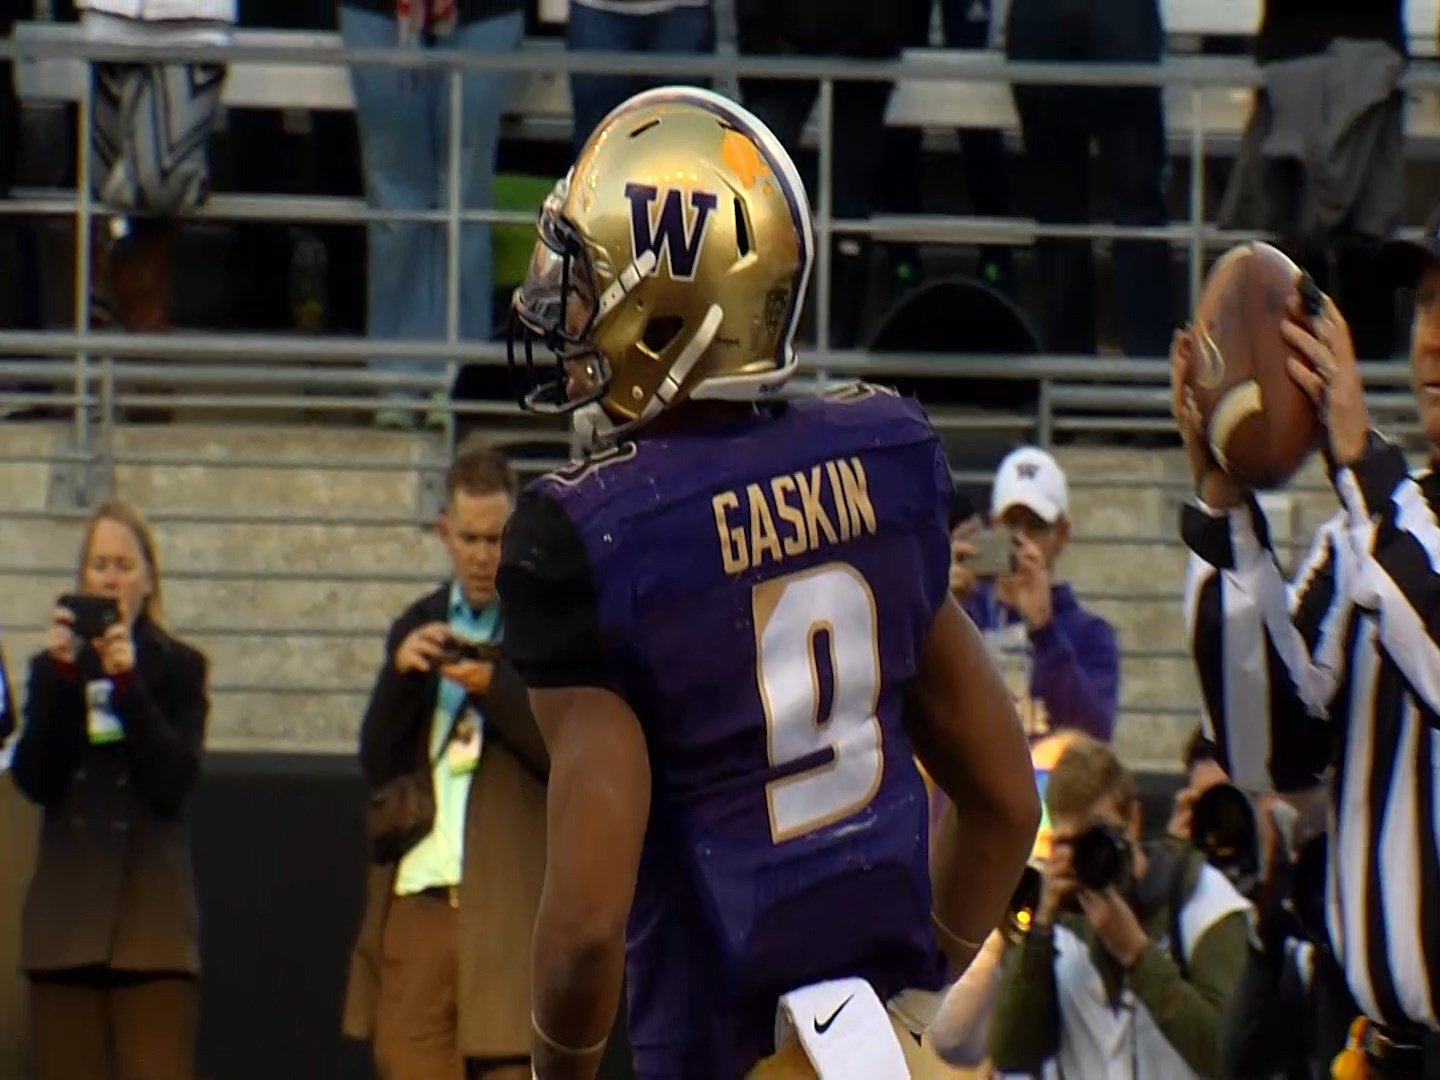 Myles Gaskin finished with a season-high 181 yards and four touchdowns to help Washington beat Southern Mississippi 44-31 on Saturday in the Heart of Dallas Bowl.